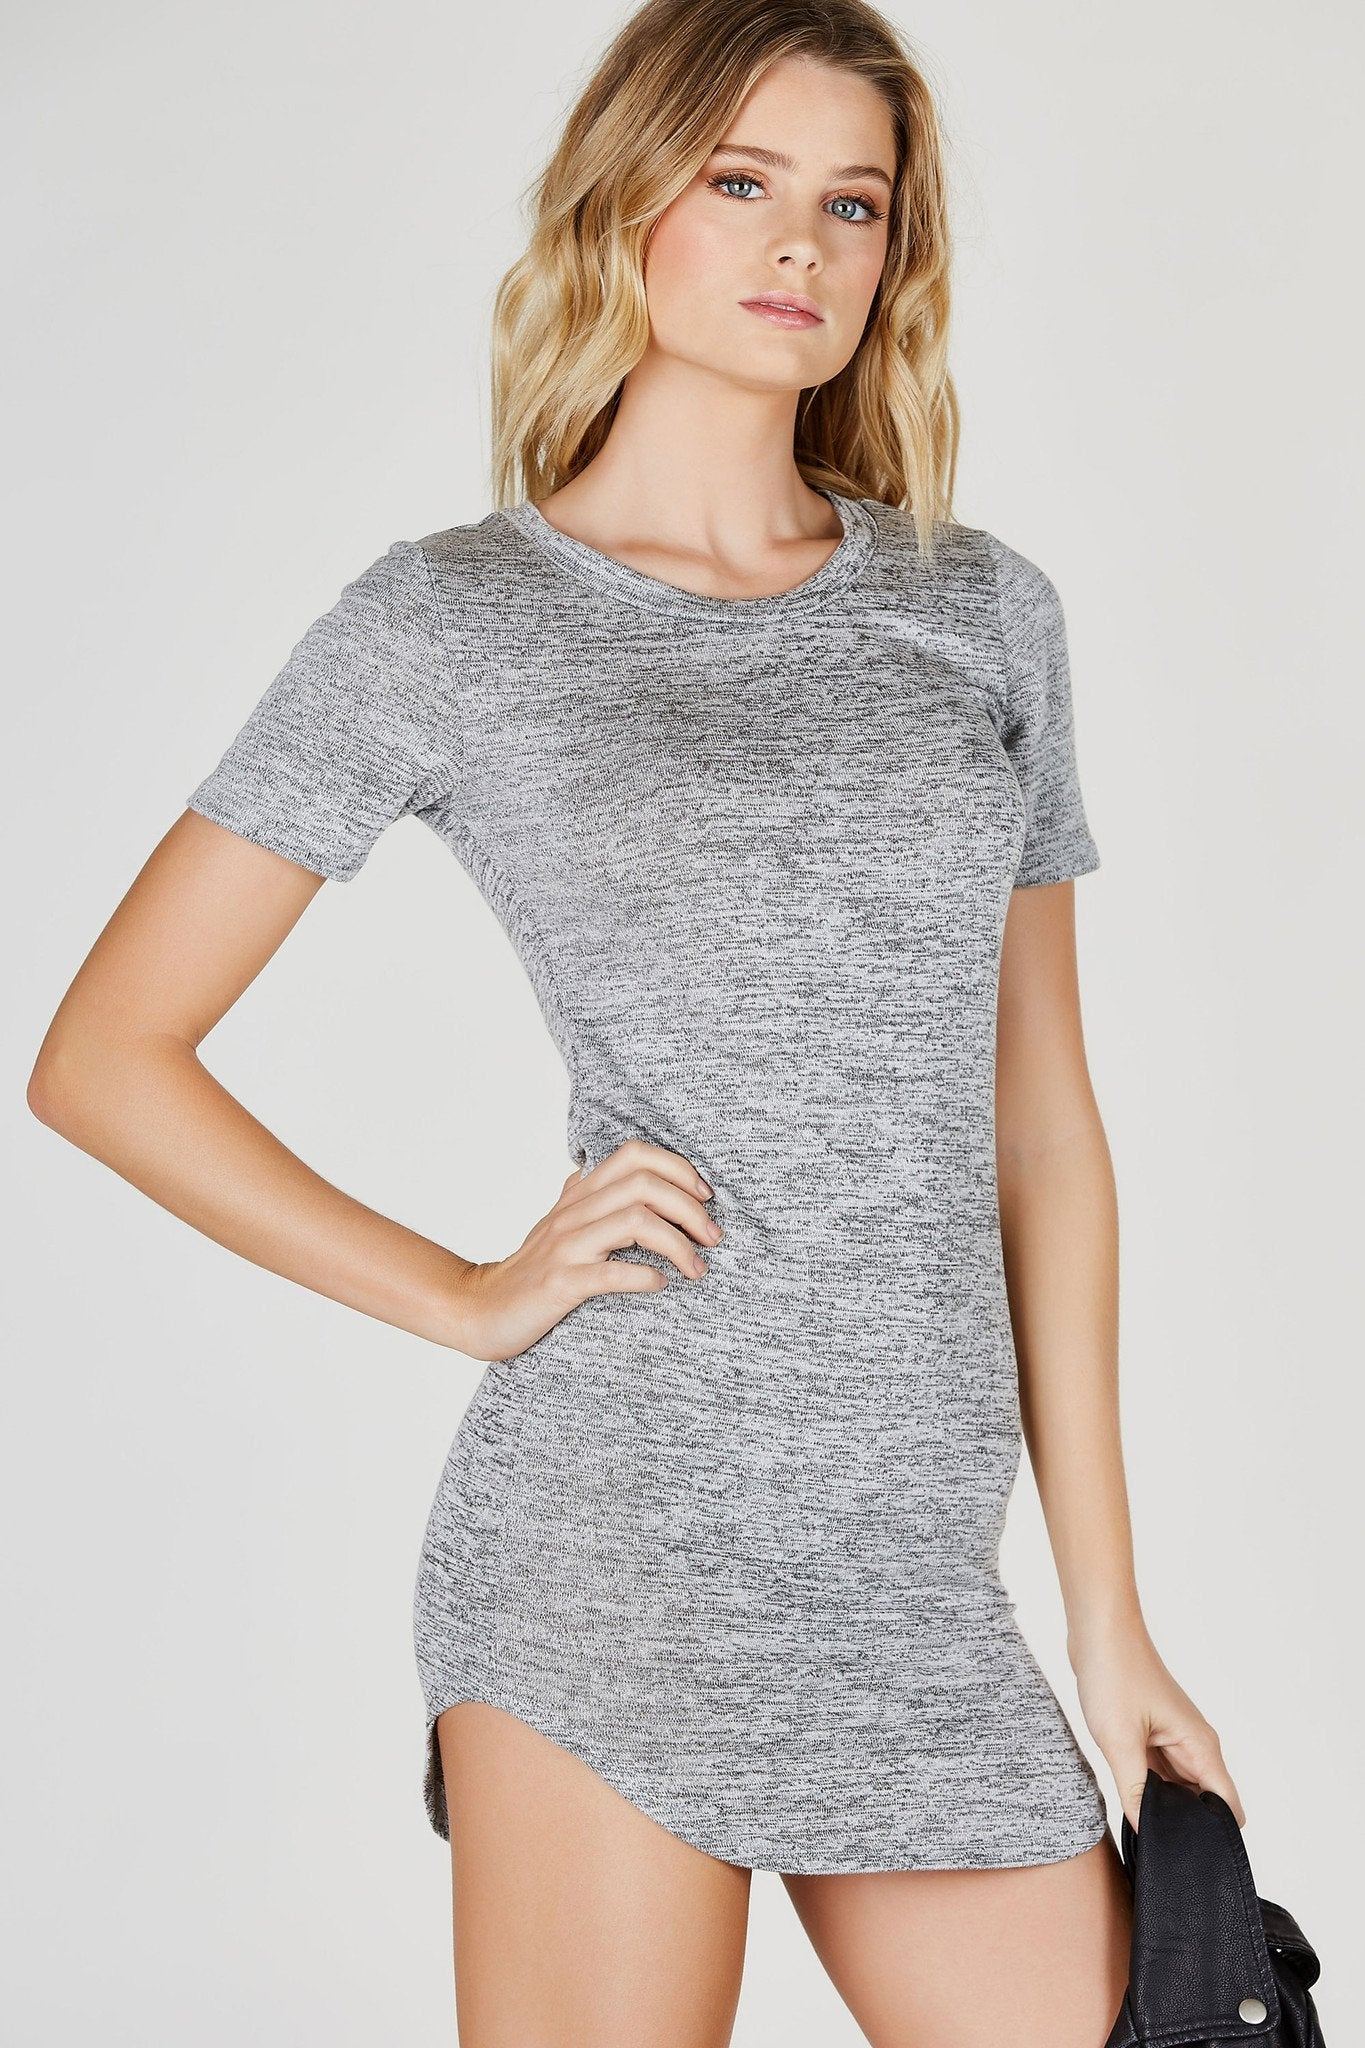 We're taking it back to the basics with this flirty mini dress! Heathered material with short sleeves and rounded hem. Slim fit and lightweight for comfort. Style with a denim jacket and sneakers for an adorable daytime look!